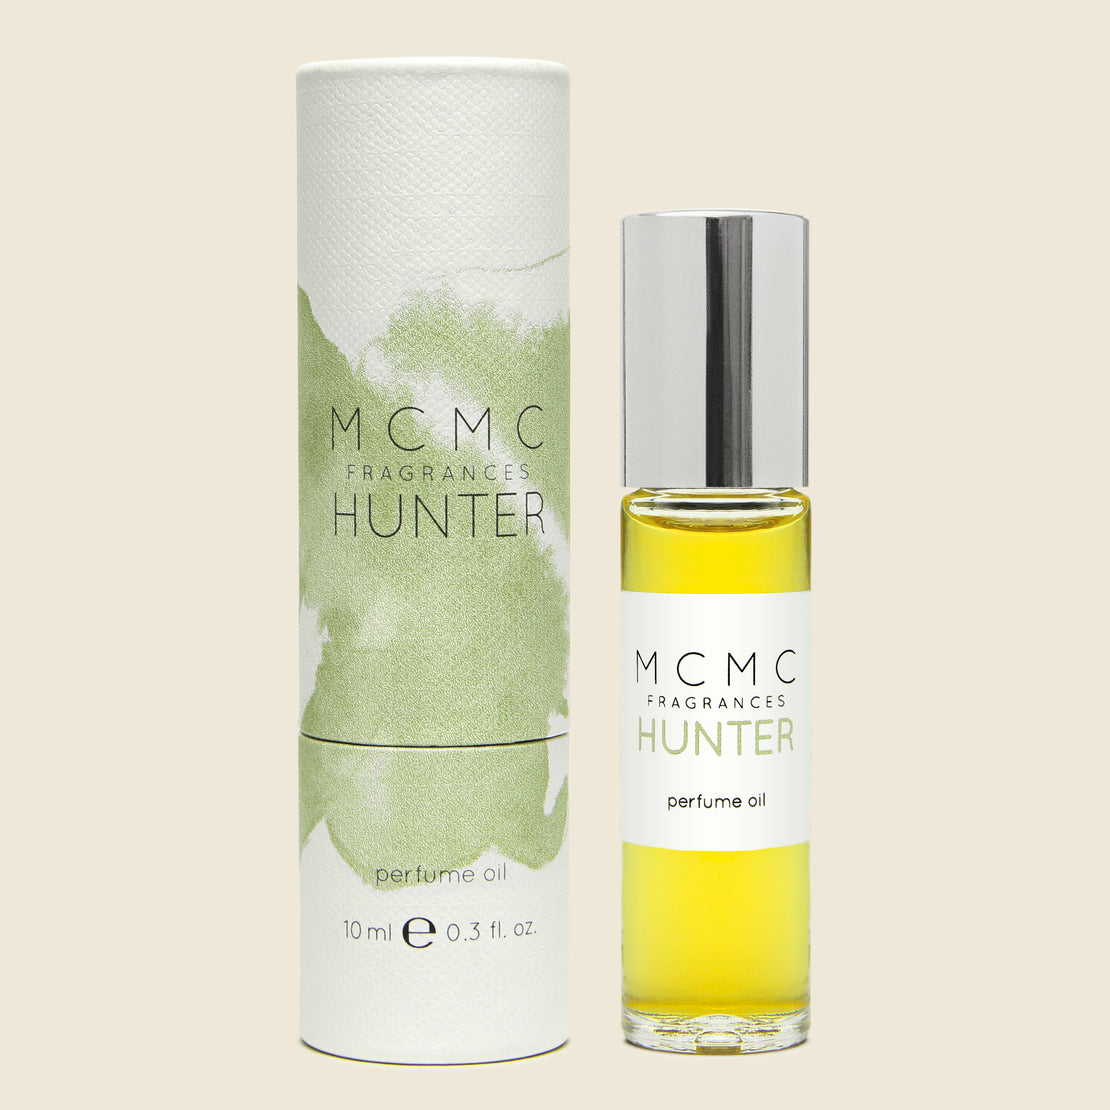 MCMC Fragrances Perfume Oil - HUNTER, 9ml